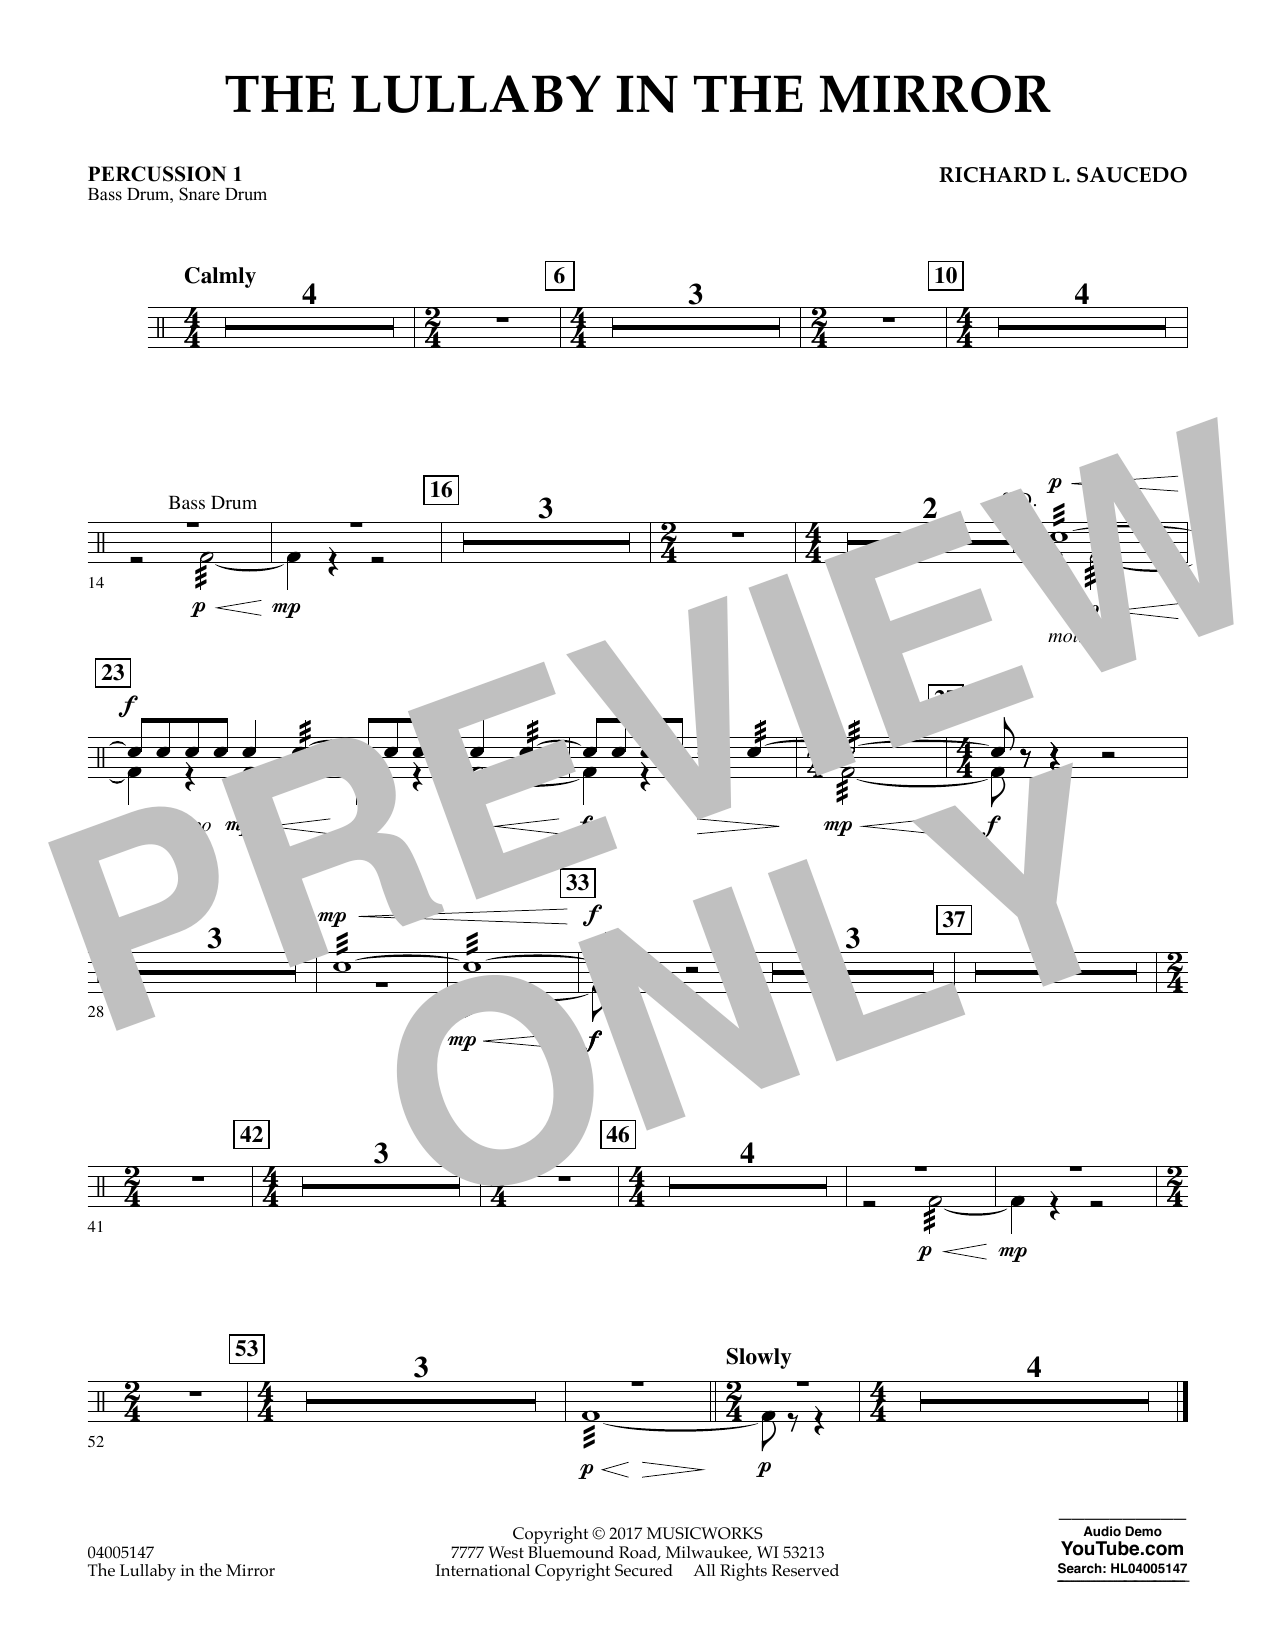 The Lullaby in the Mirror - Percussion 1 Digitale Noten